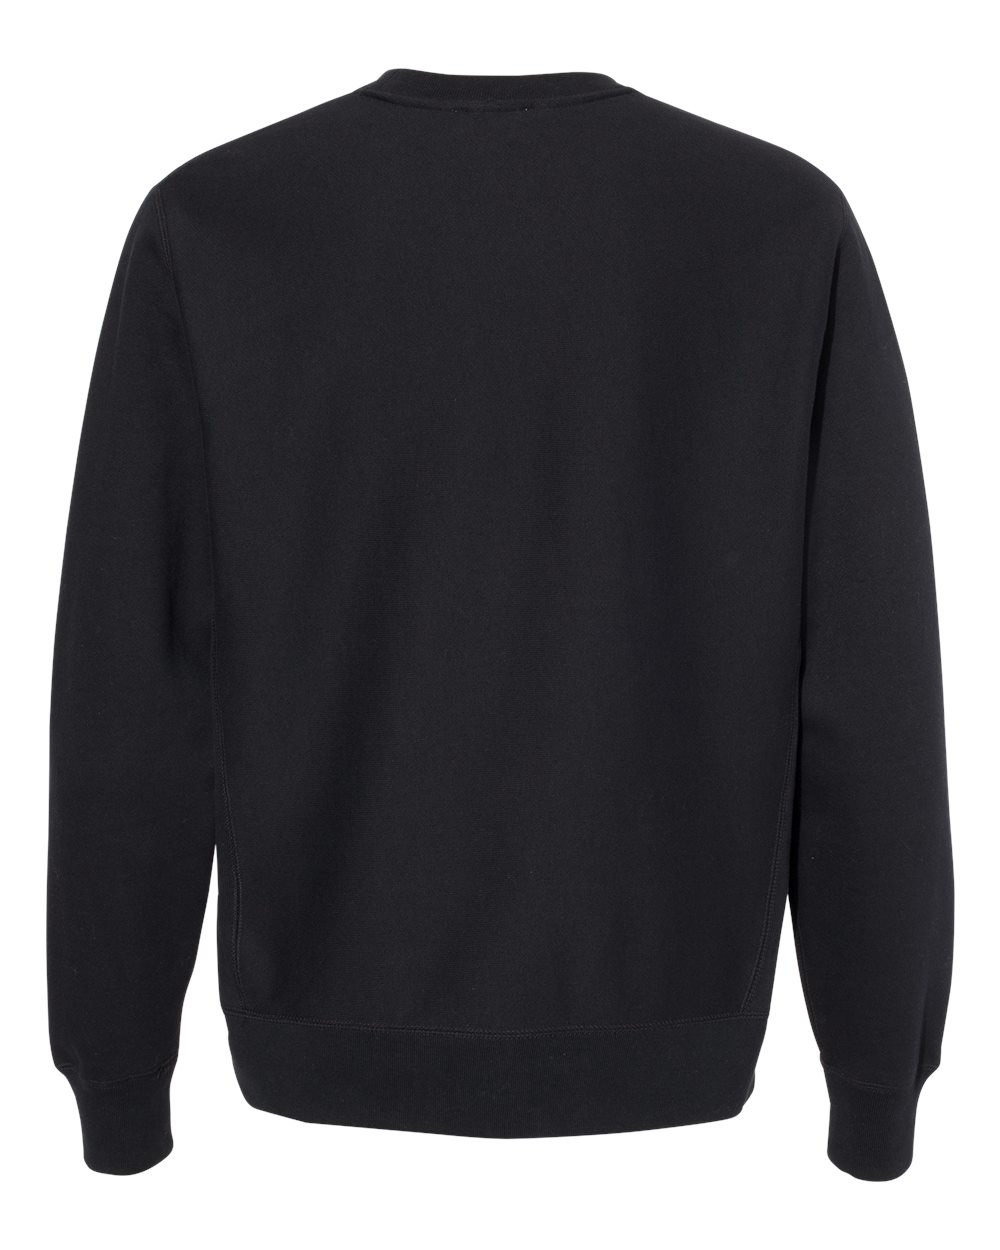 Independent-Trading-Co-Mens-Premium-Heavyweight-Cross-Grain-Sweatshirt-IND5000C thumbnail 10